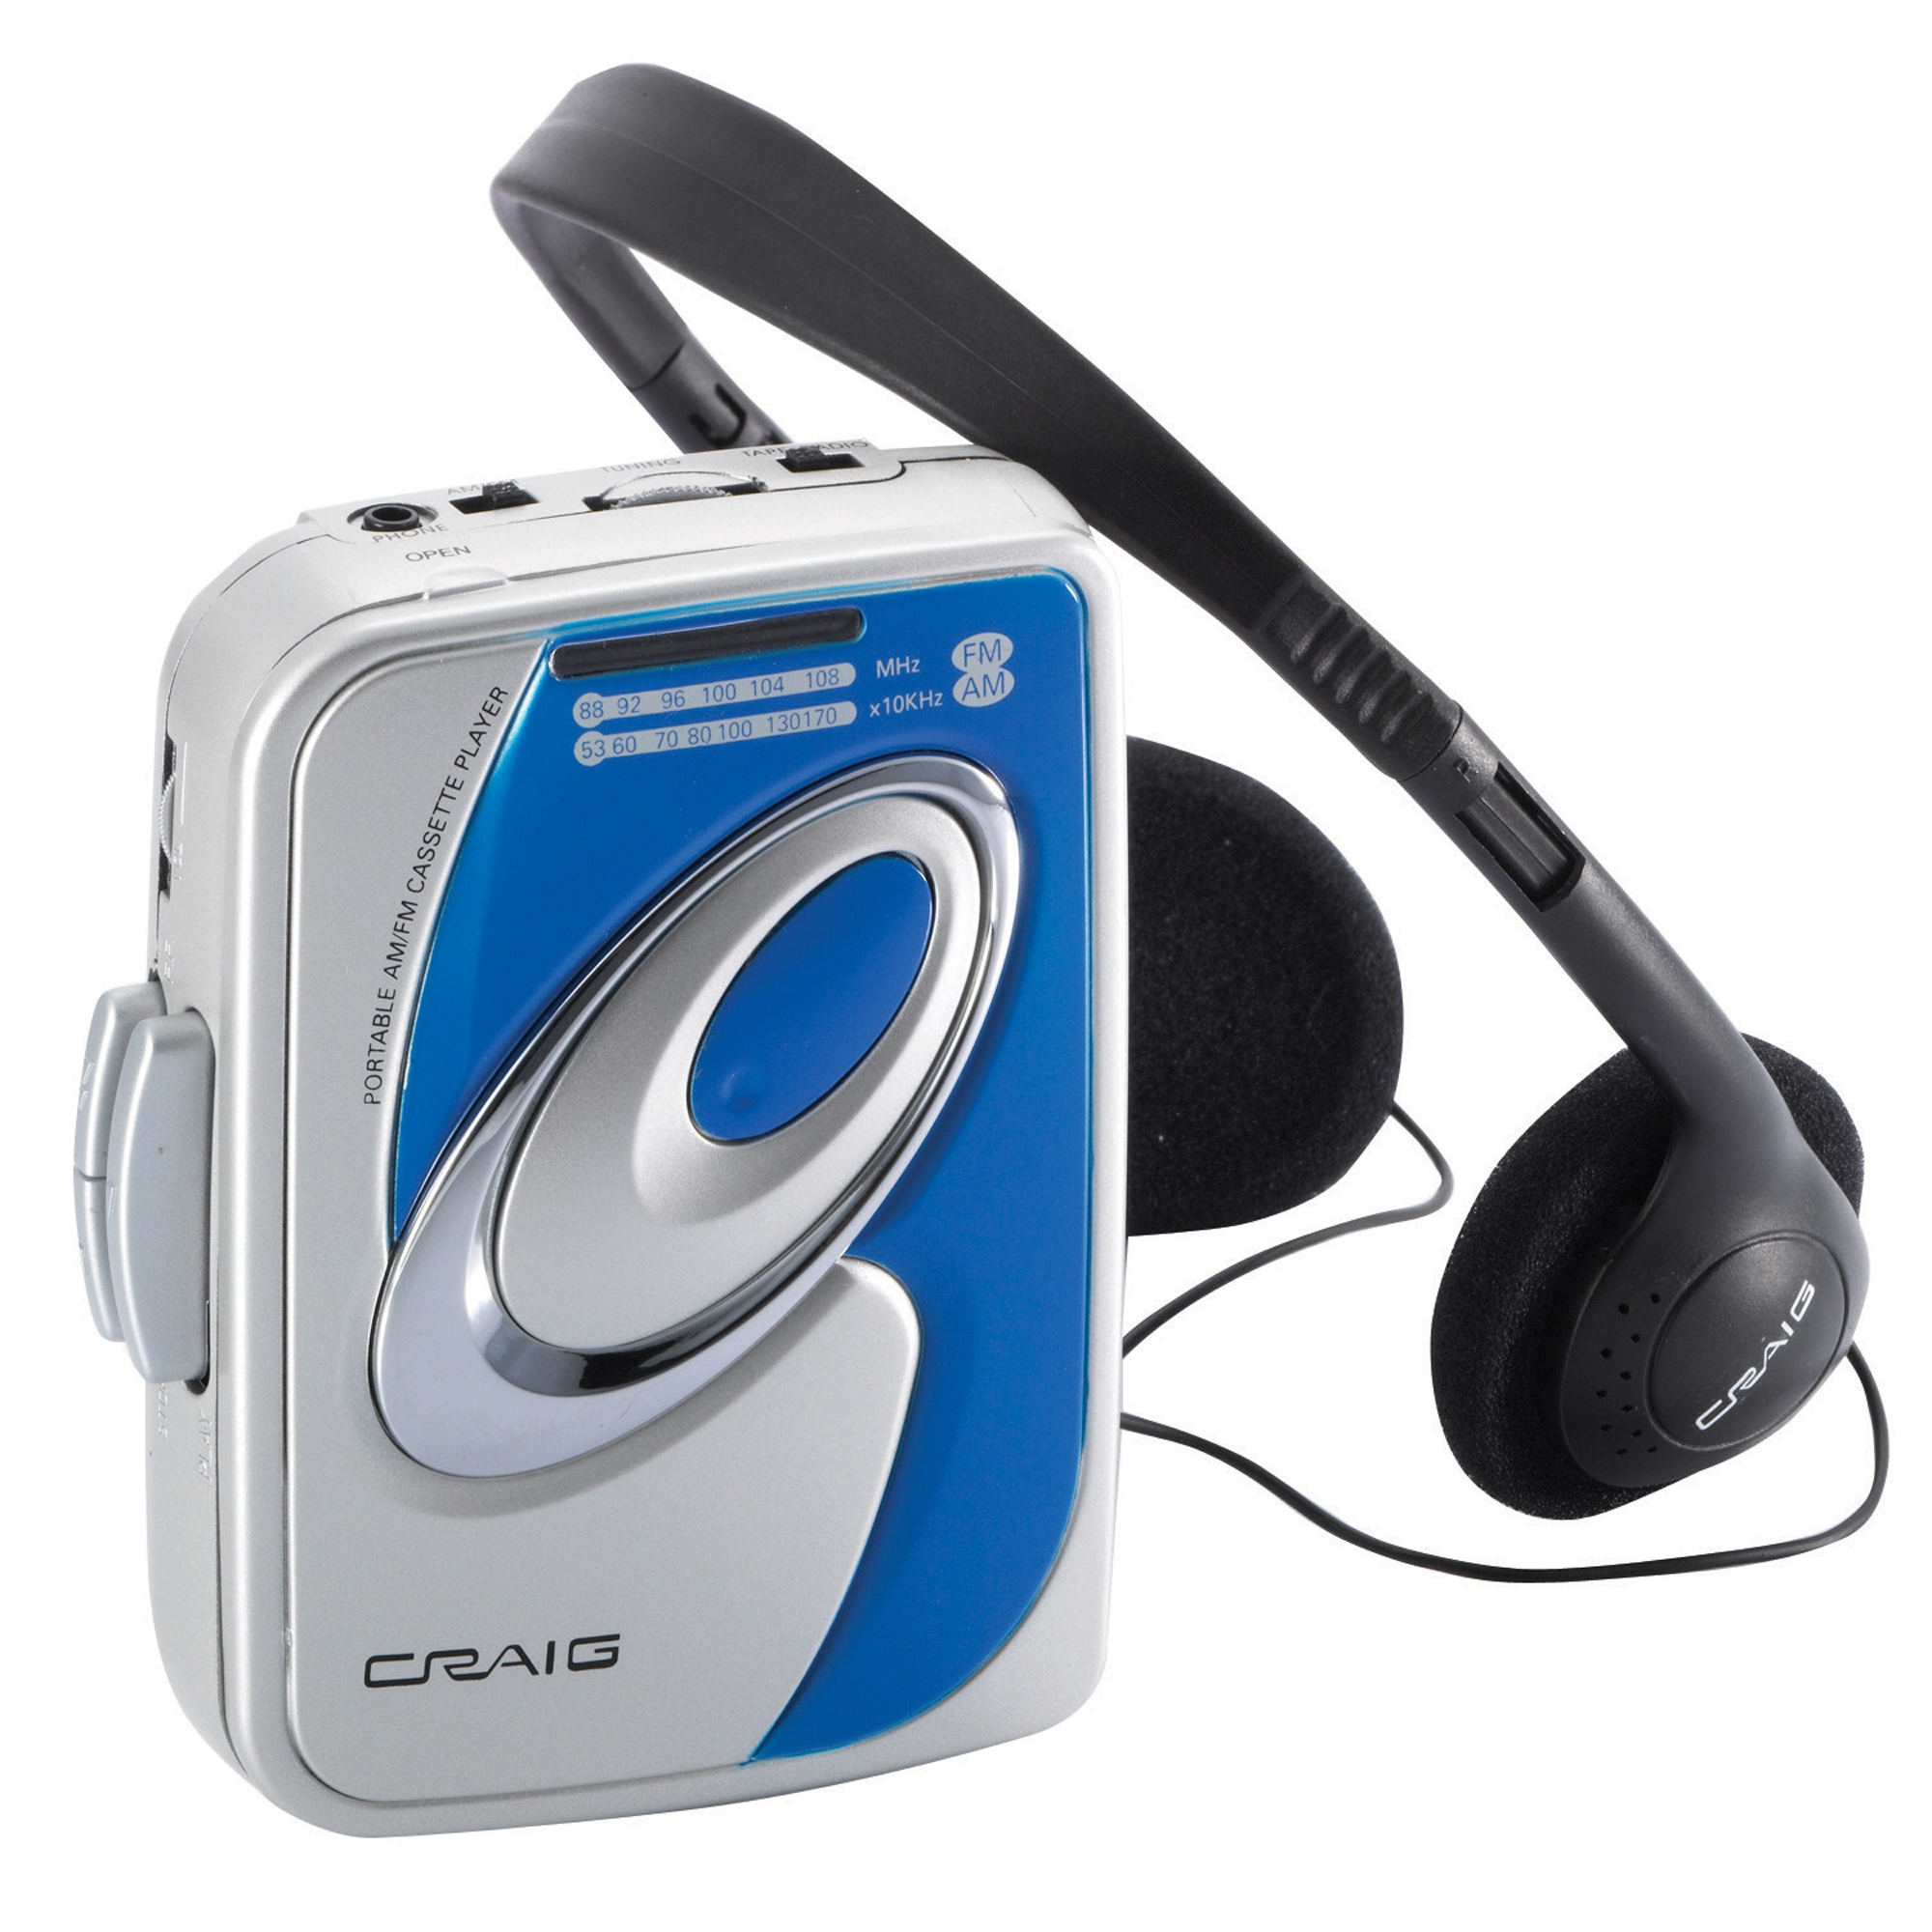 Craig Personal AM/FM Radio Cassette Player with Headphones